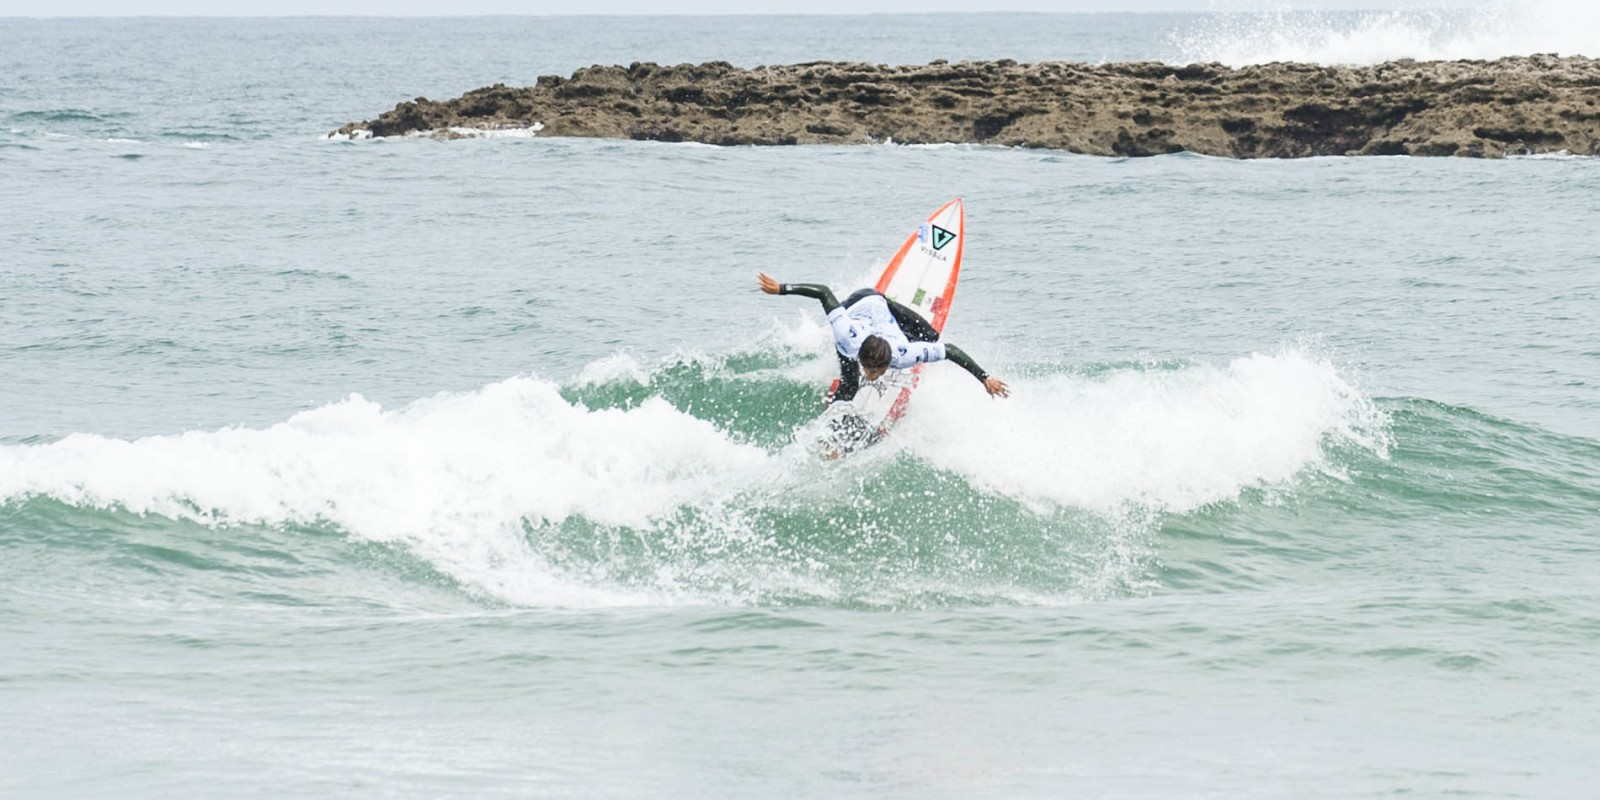 ISA, Isa world surfing games, biarritz, francia, surf, jhony corzo